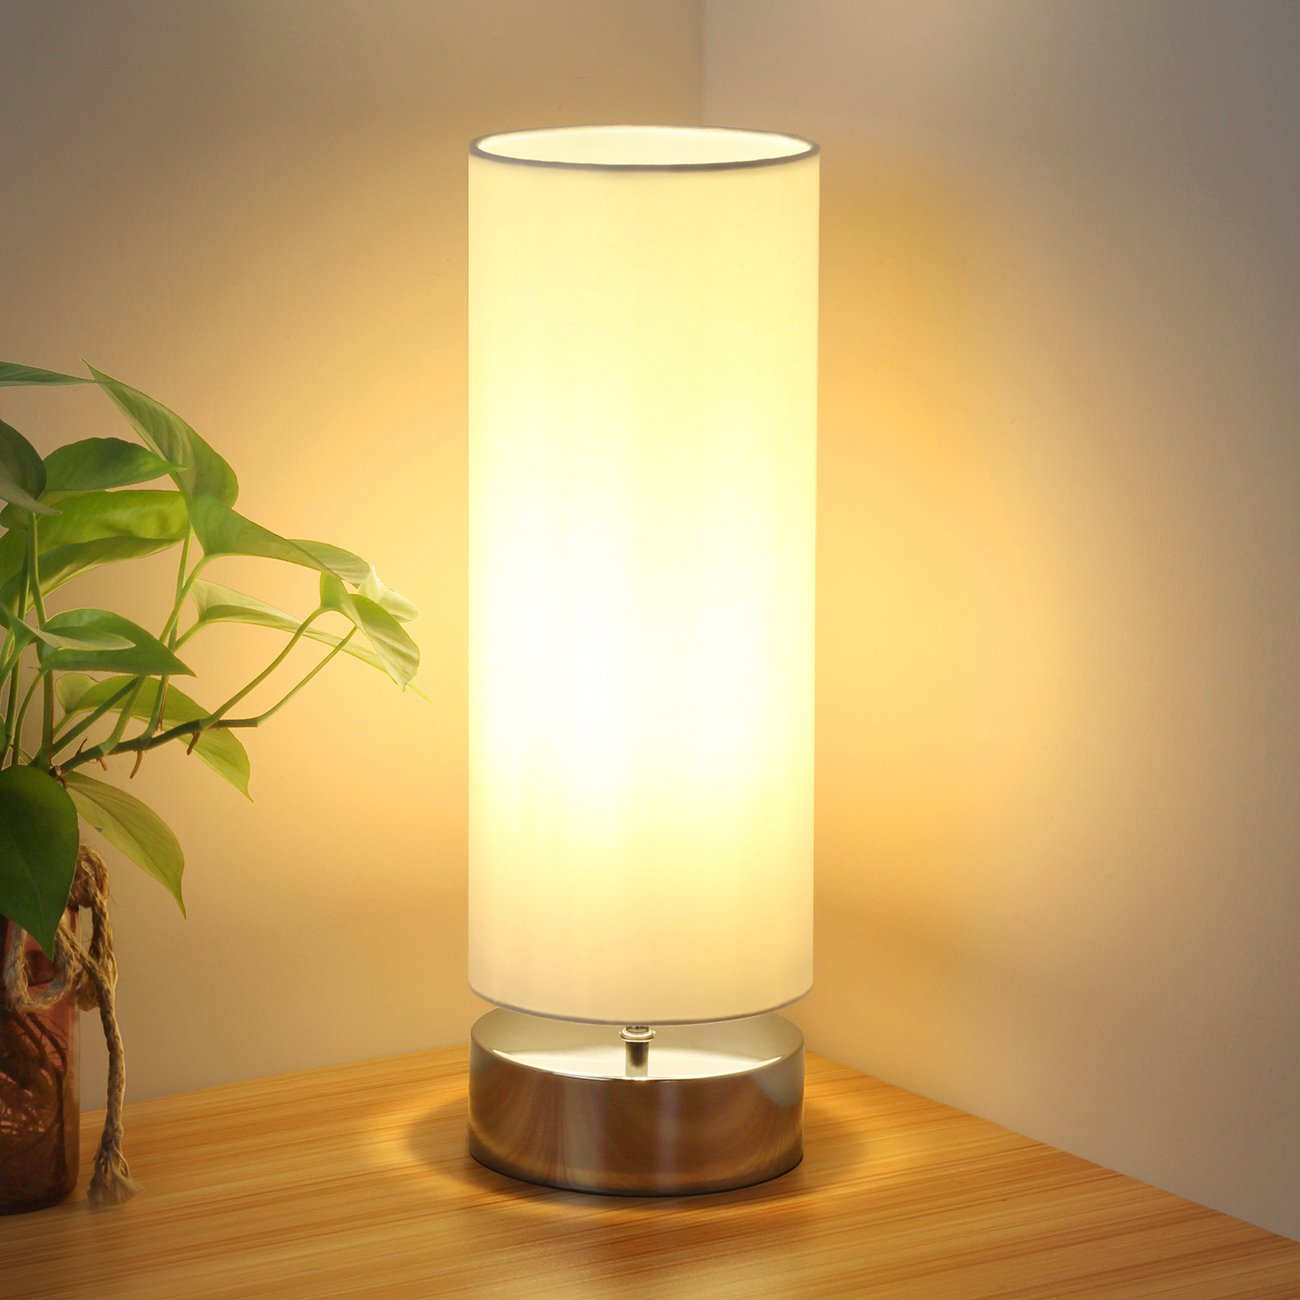 Touch Control Table Lamp Bedside Minimalist Desk Lamp Modern Accent Lamp  Dimmable Touch Light With Cylinder Lamp Shade Night Light Nightstand Lamp  For ...